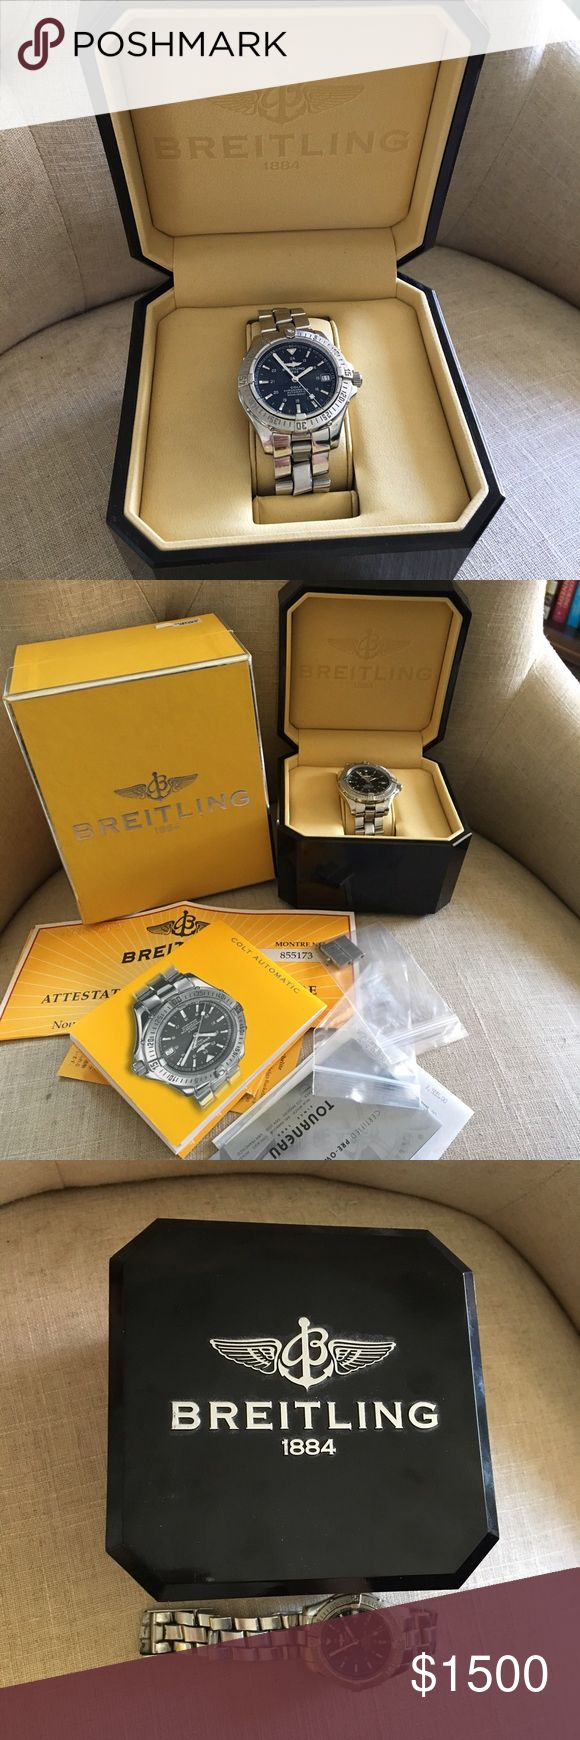 Breitling men's watch. 100% Authentic men's Breitling 38MM Colt A17350 Automatic chronometer watch. Gently used, needs cleaning. Works perfectly. Comes with all paperwork, links, certification. Breitling Accessories Watches